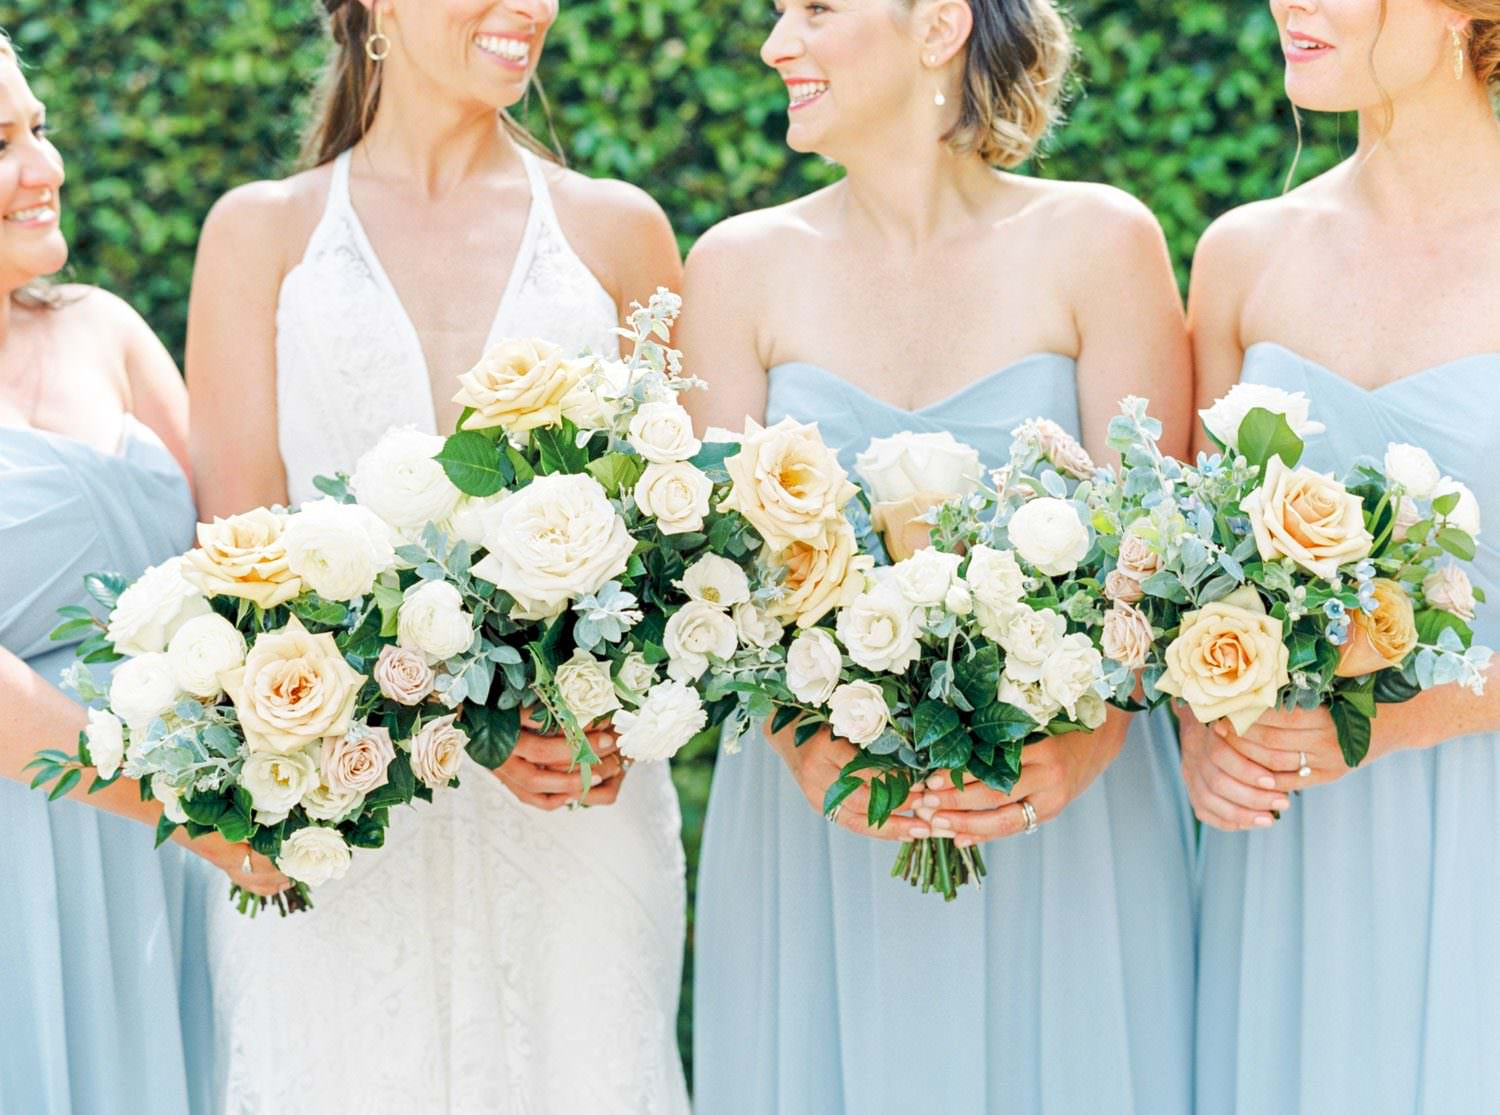 Bouquet with peach blue green and white, Blue bridesmaid dresses, Bridal party portrait in a Rue de Seine gown, White green and blue wedding at the Santaluz Club, Cavin Elizabeth Photography